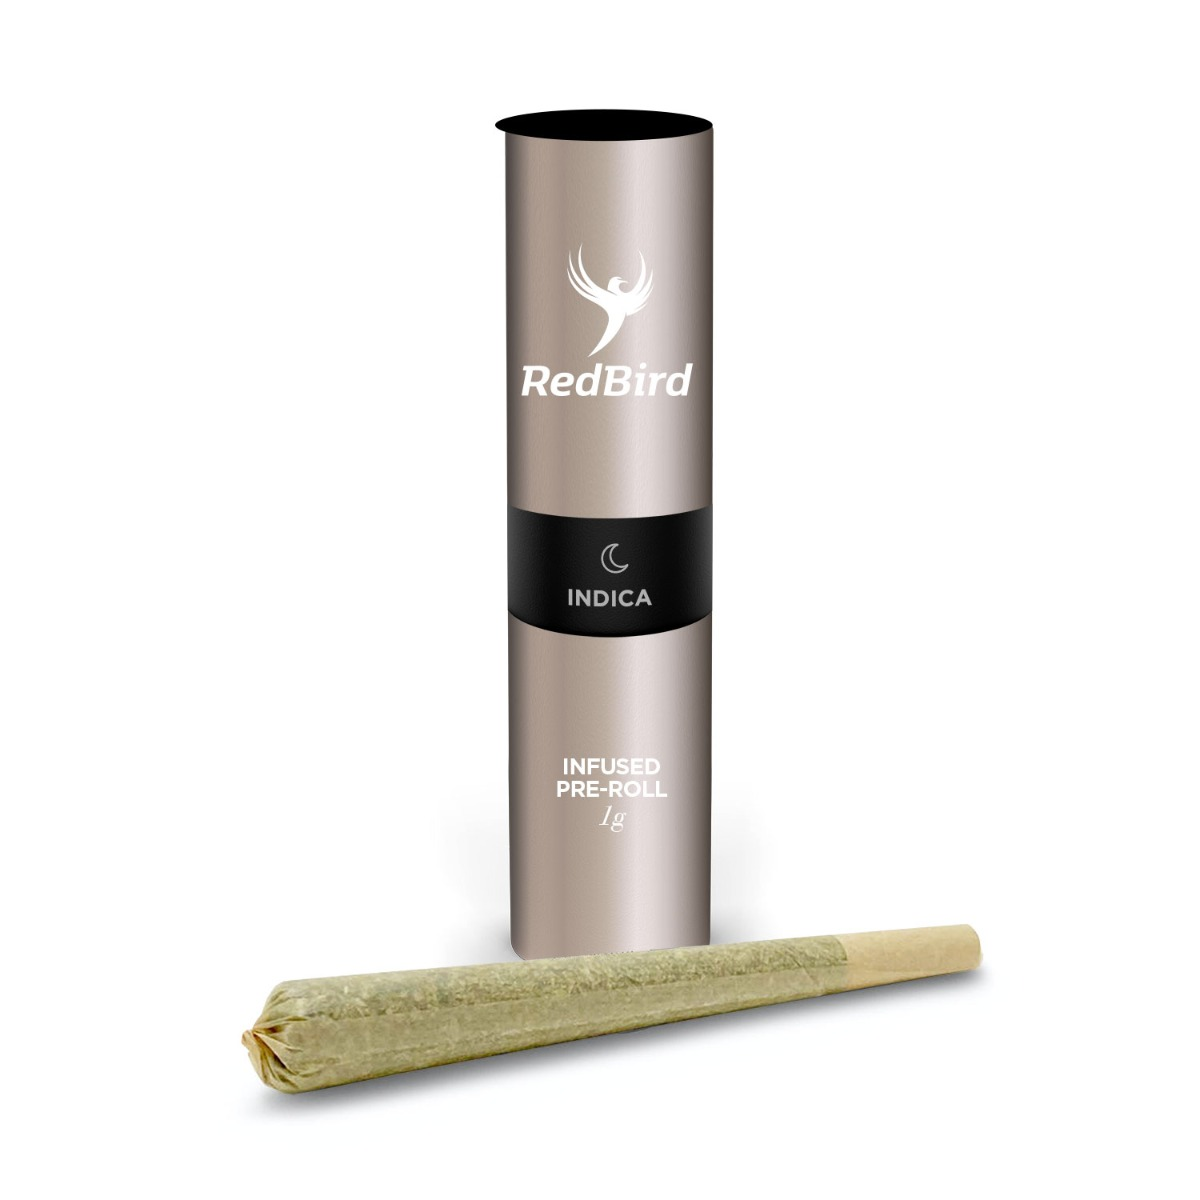 Infused Pre-Roll 1g